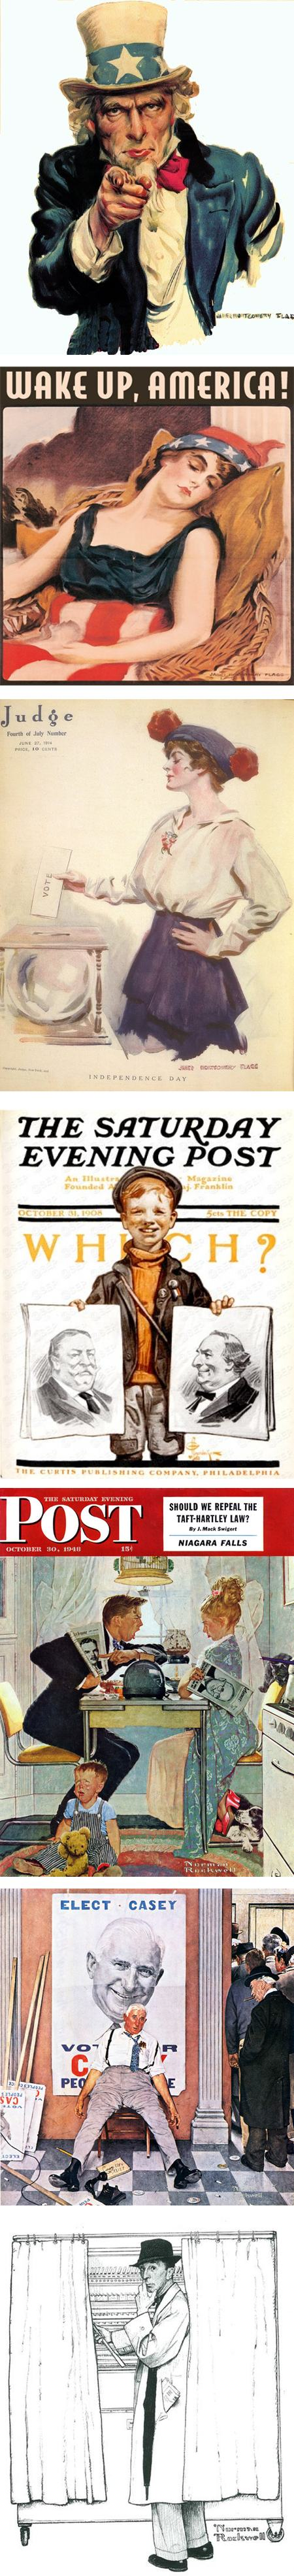 Voting, James Montgomery Flagg, J.C. Leyendecker, Norman Rockwell